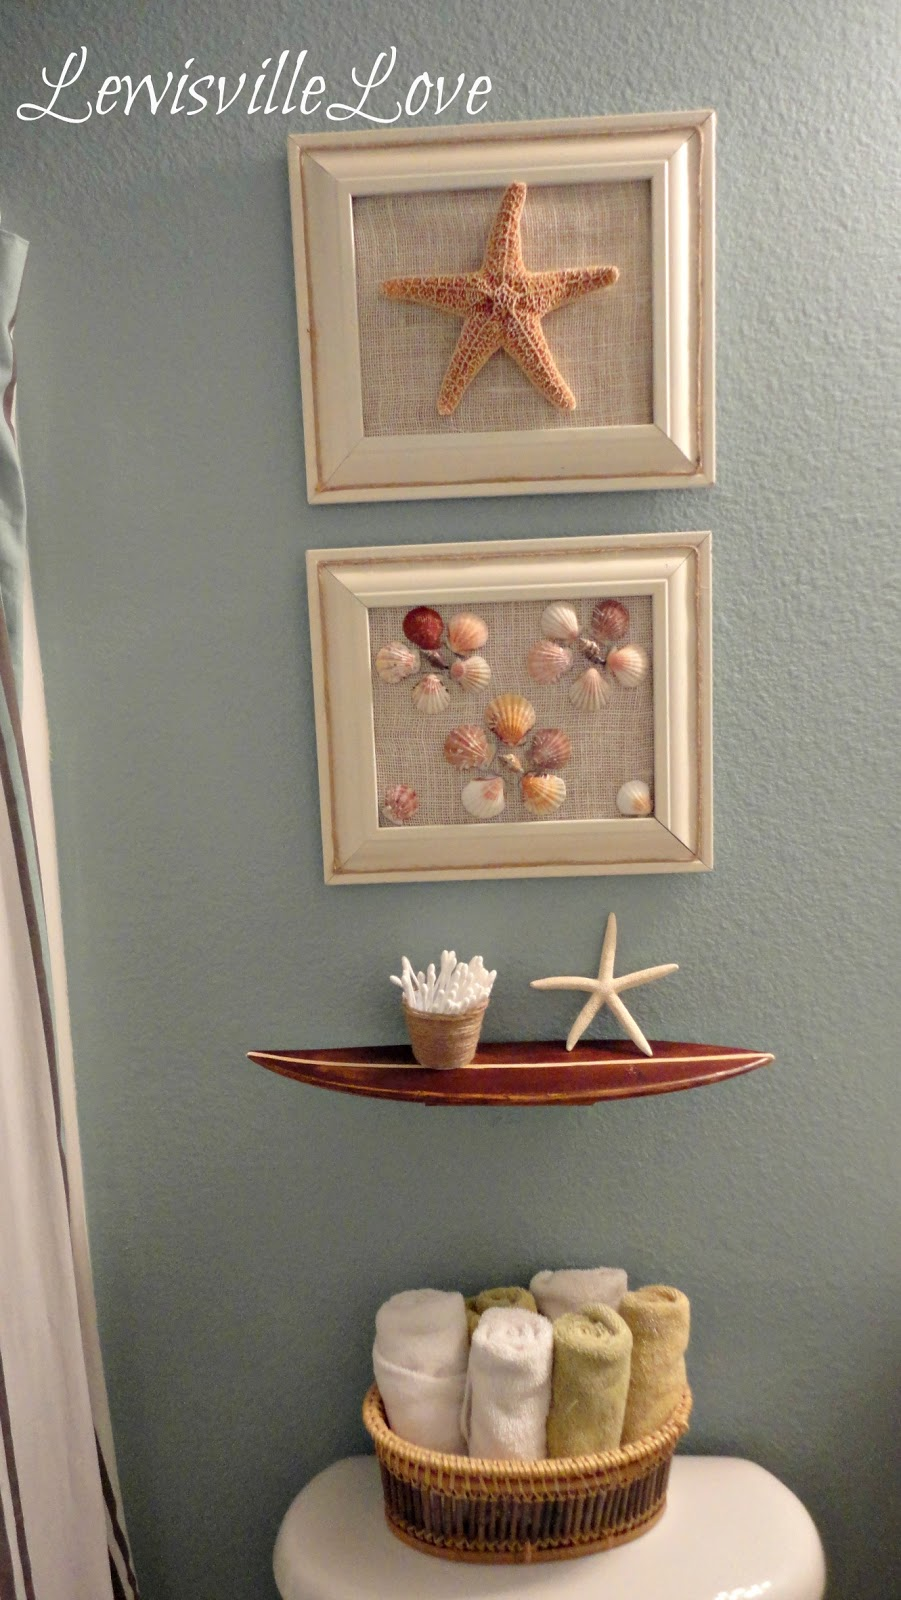 Lewisville love beach theme bathroom reveal for Bathroom theme ideas